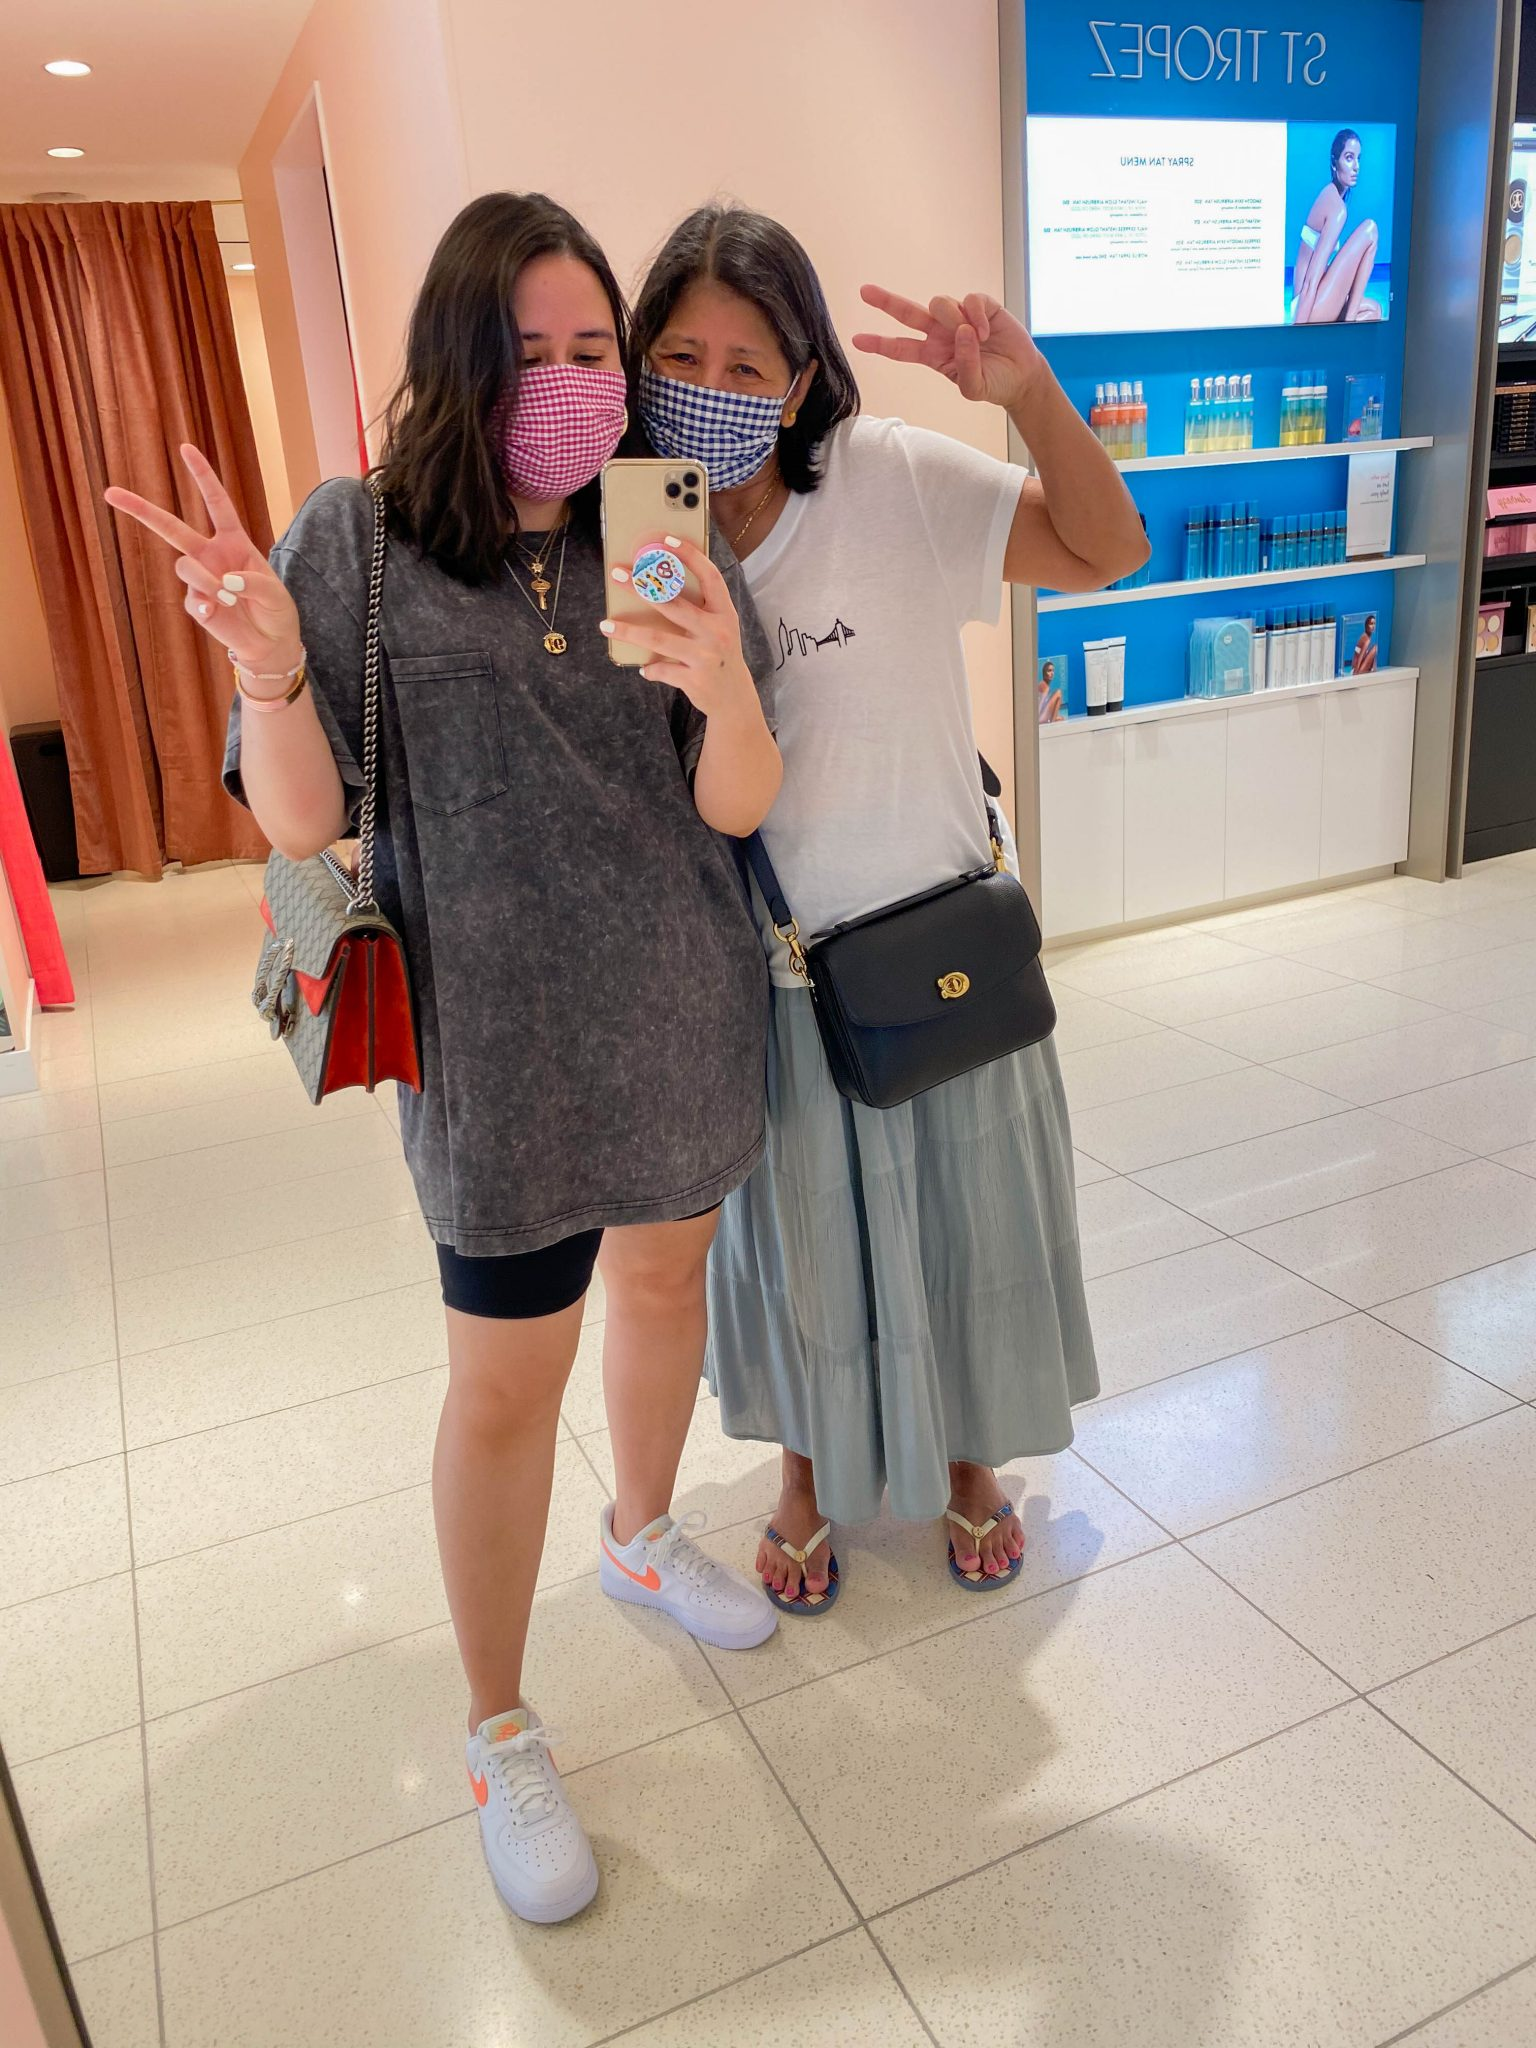 Nordstrom Anniversary Sale 2020 Guide by popular NYC life and style blog, Live Laugh Linda: image of two women in the Nordstrom NYC Flagship store